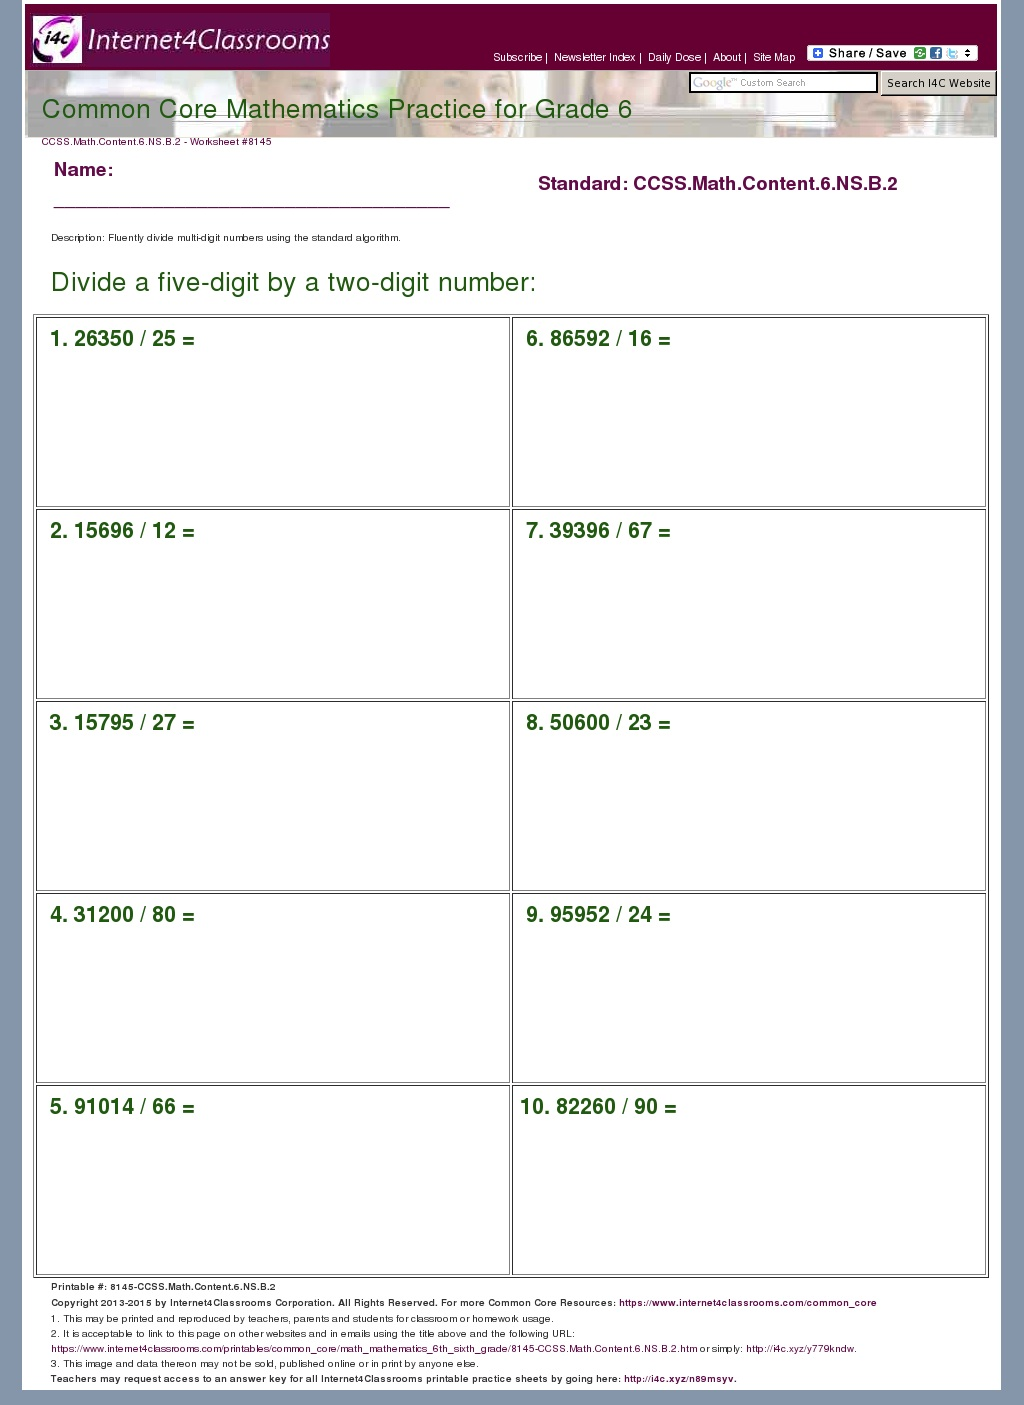 worksheet Common Core 6th Grade Math Worksheets common core grade 6 math practice worksheets templates and printable worksheet for 6th html standard ratios dec thermometer kindergarten 1000 images about educational work